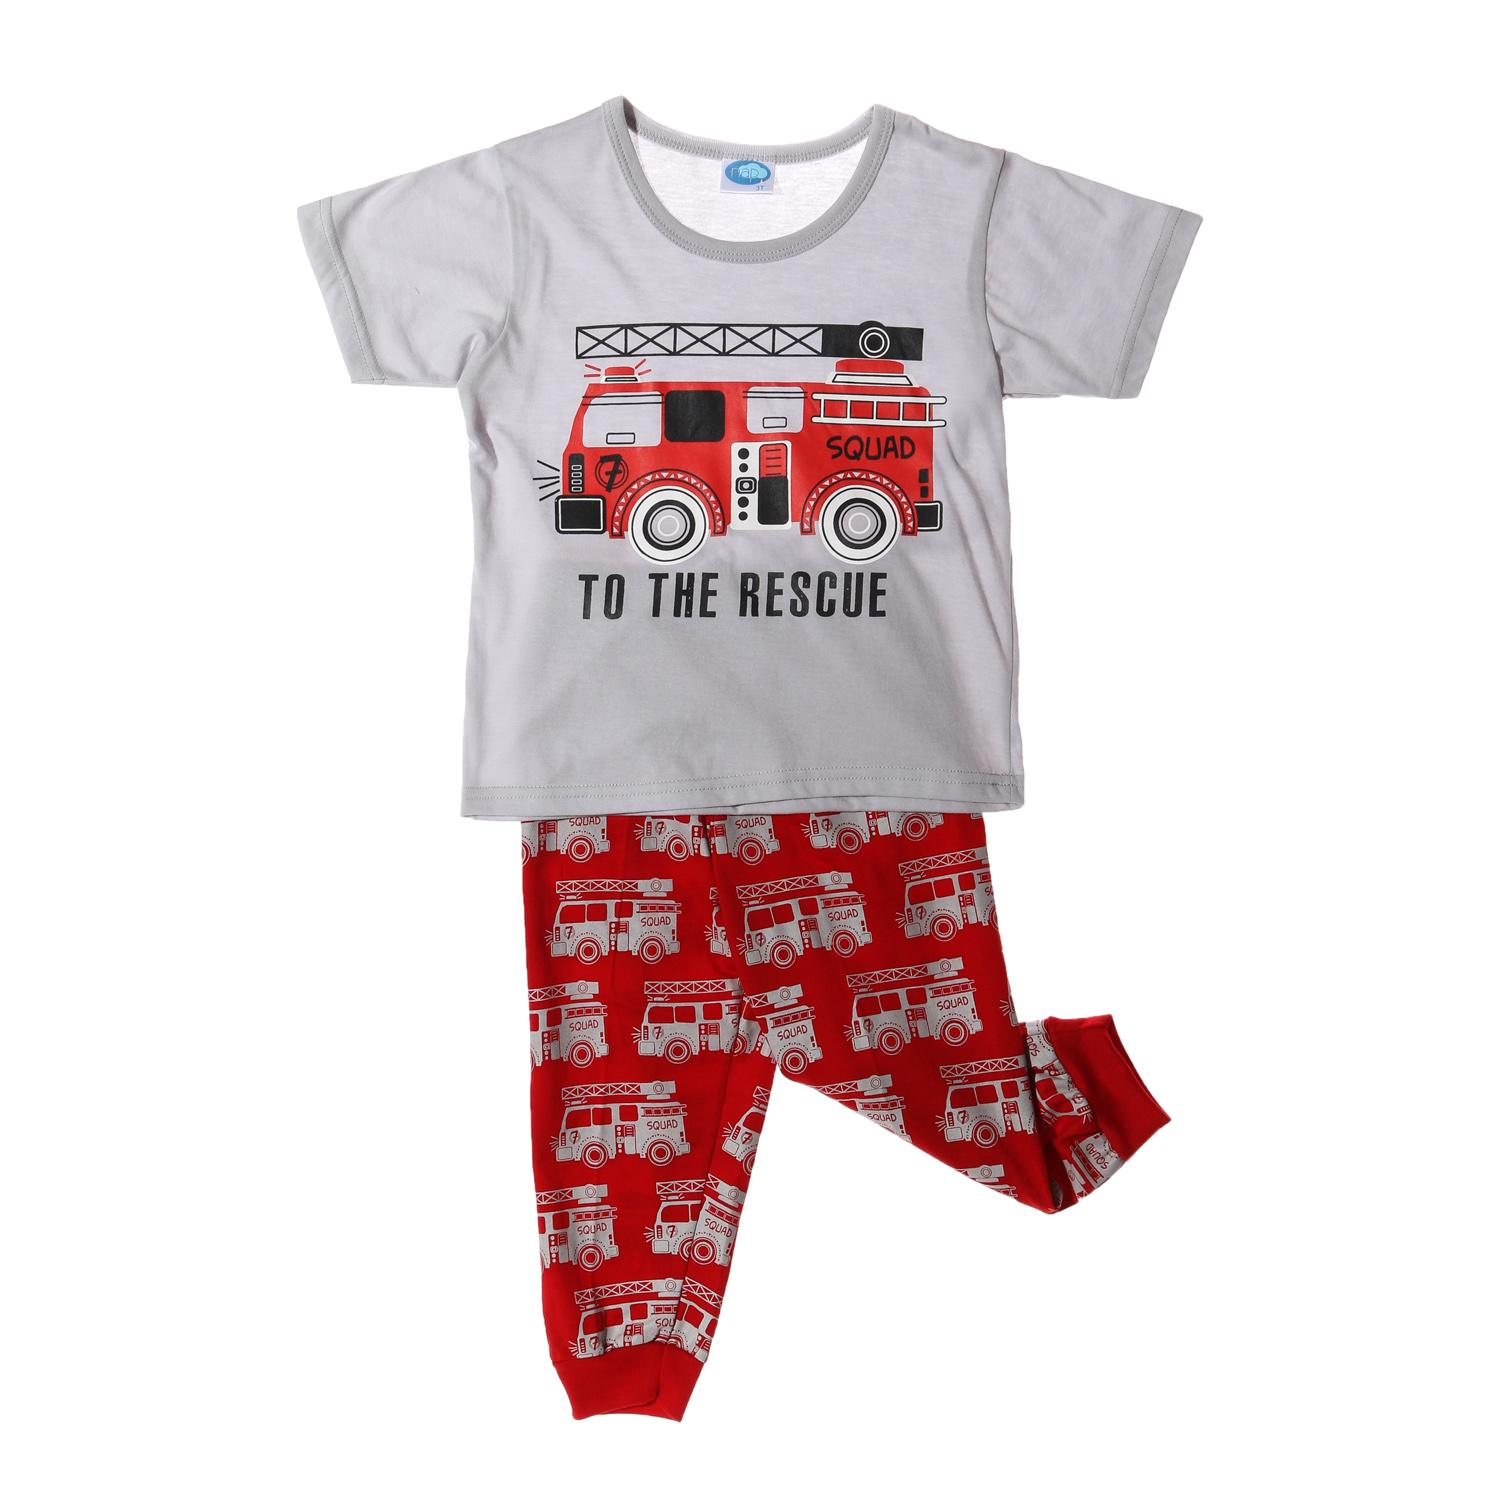 be3f356e311d2 319047 items found in Clothing & Accessories. Nap Toddler Boys To The  Rescue Pajama Set in Gray